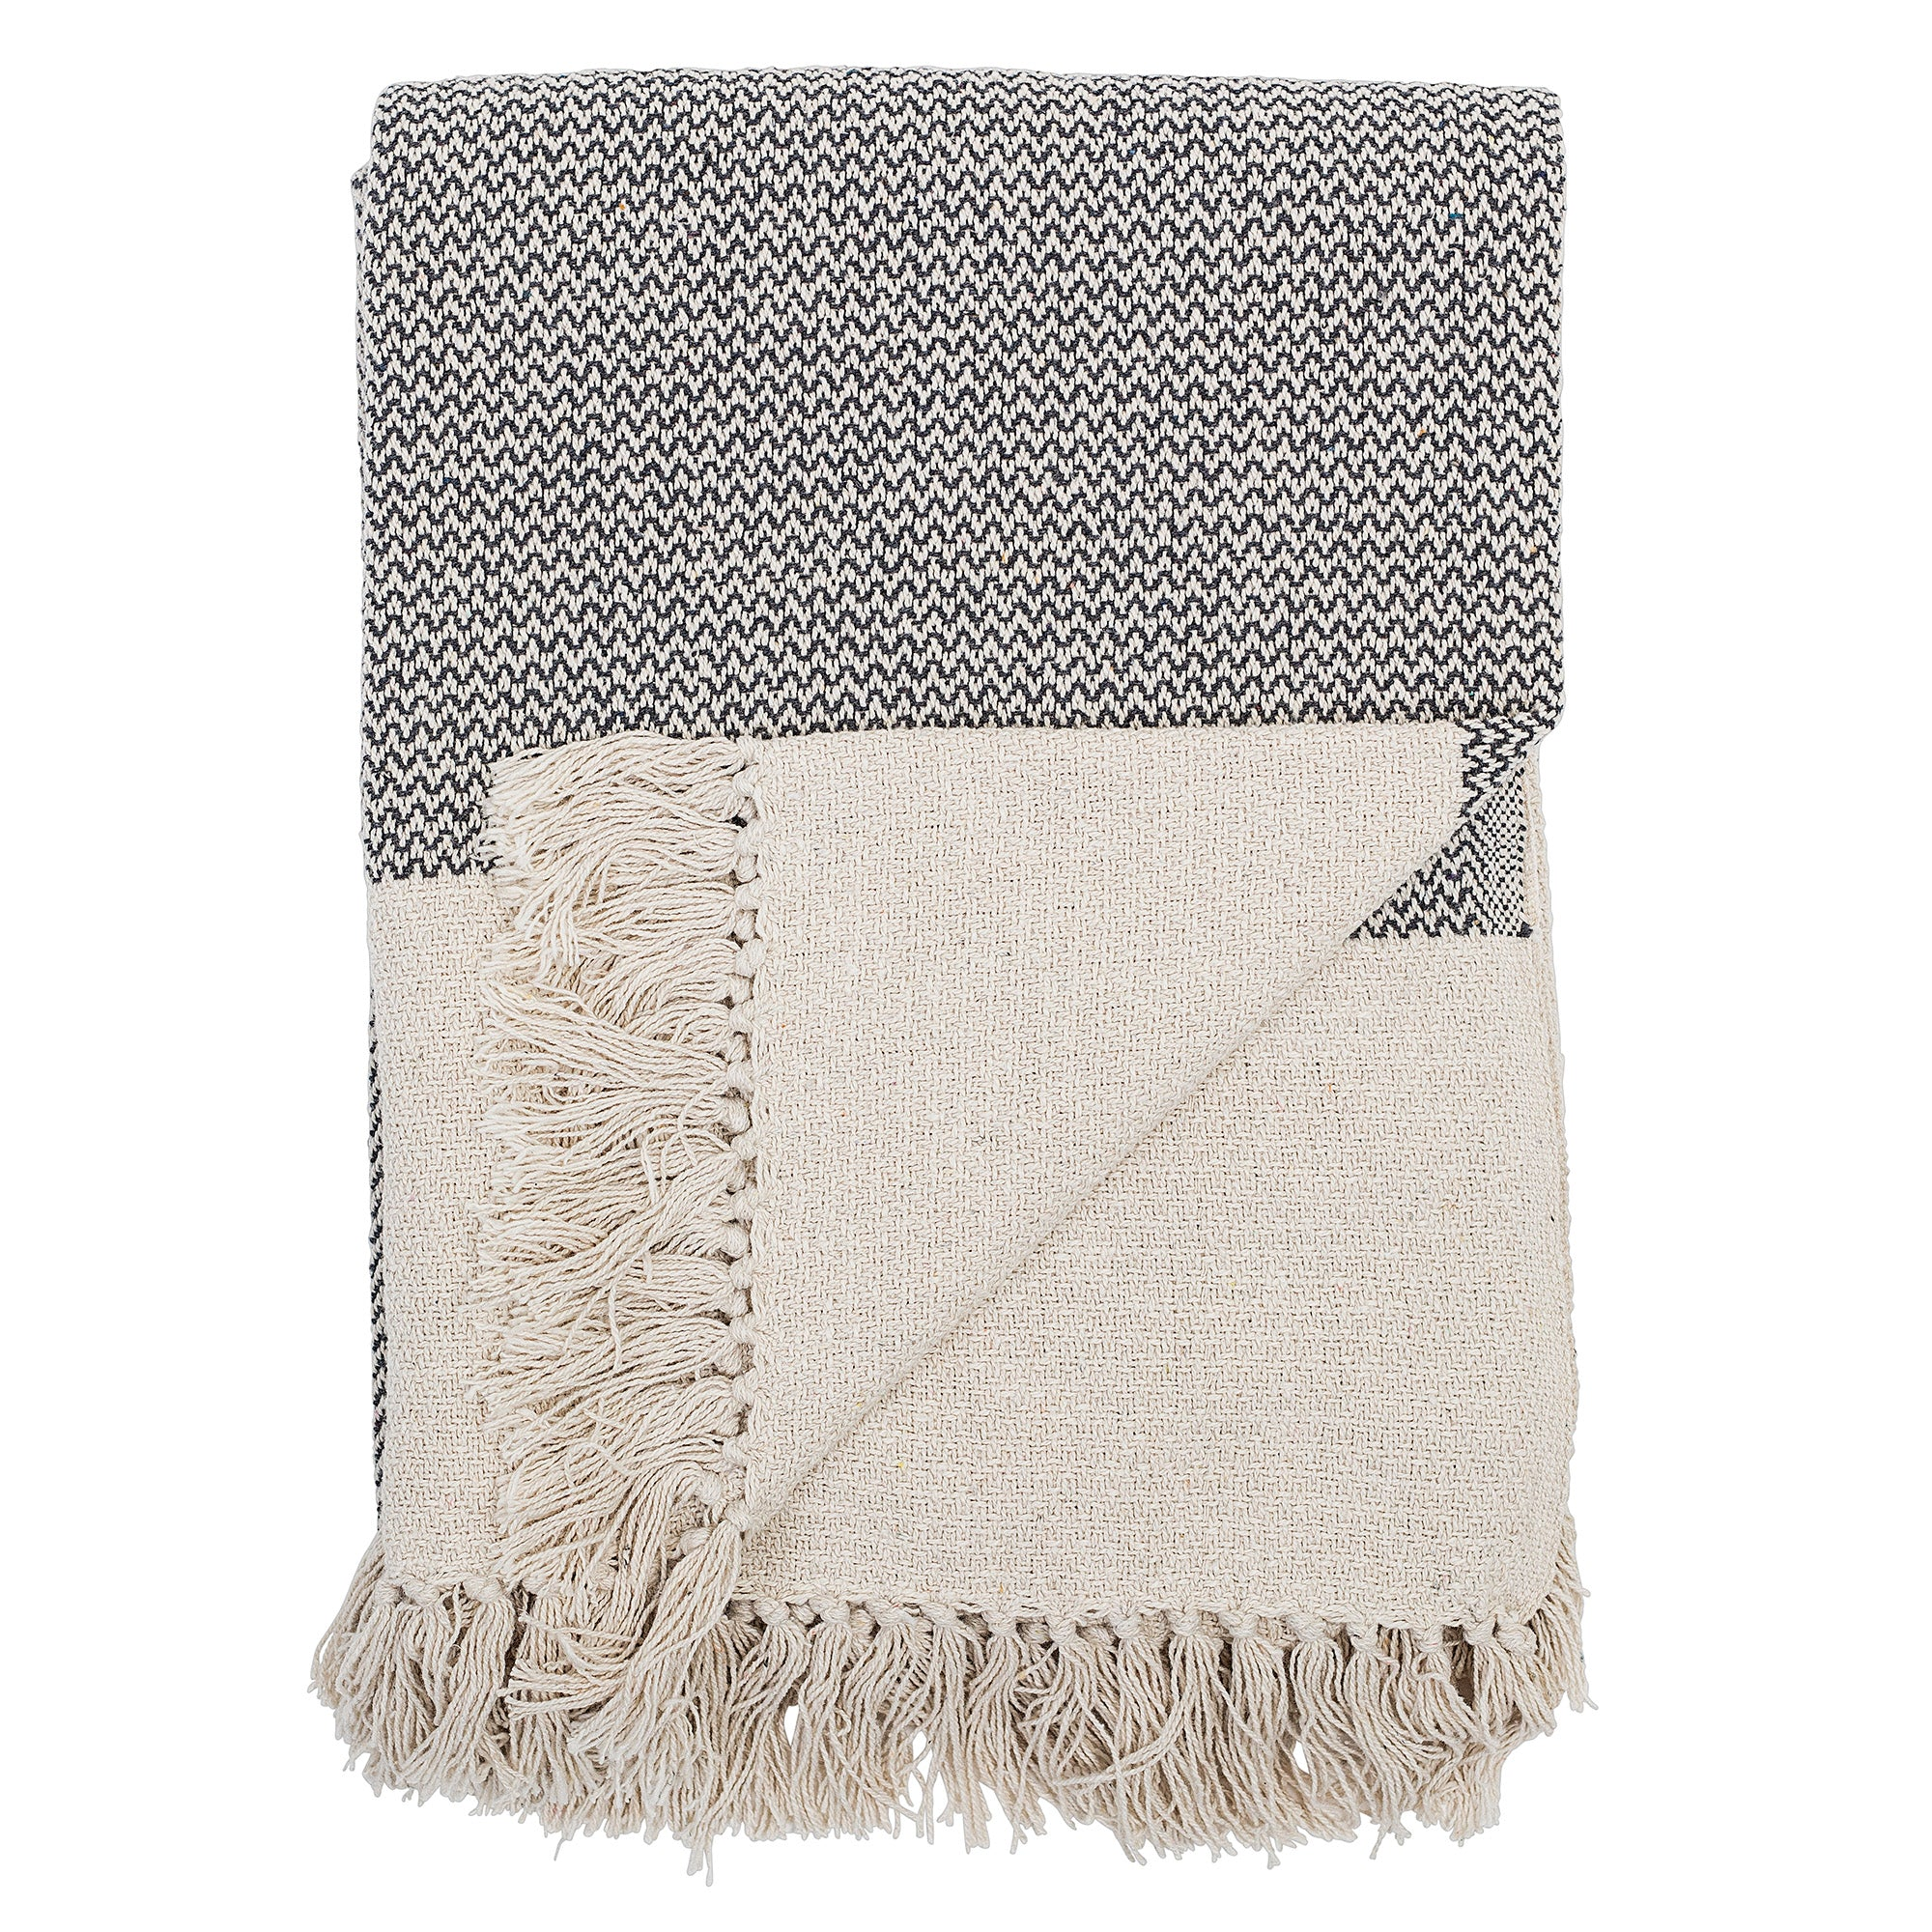 Bloomingville Large Grey and Off White Cotton Throw Homeware- a-fly-went-by.myshopify.com